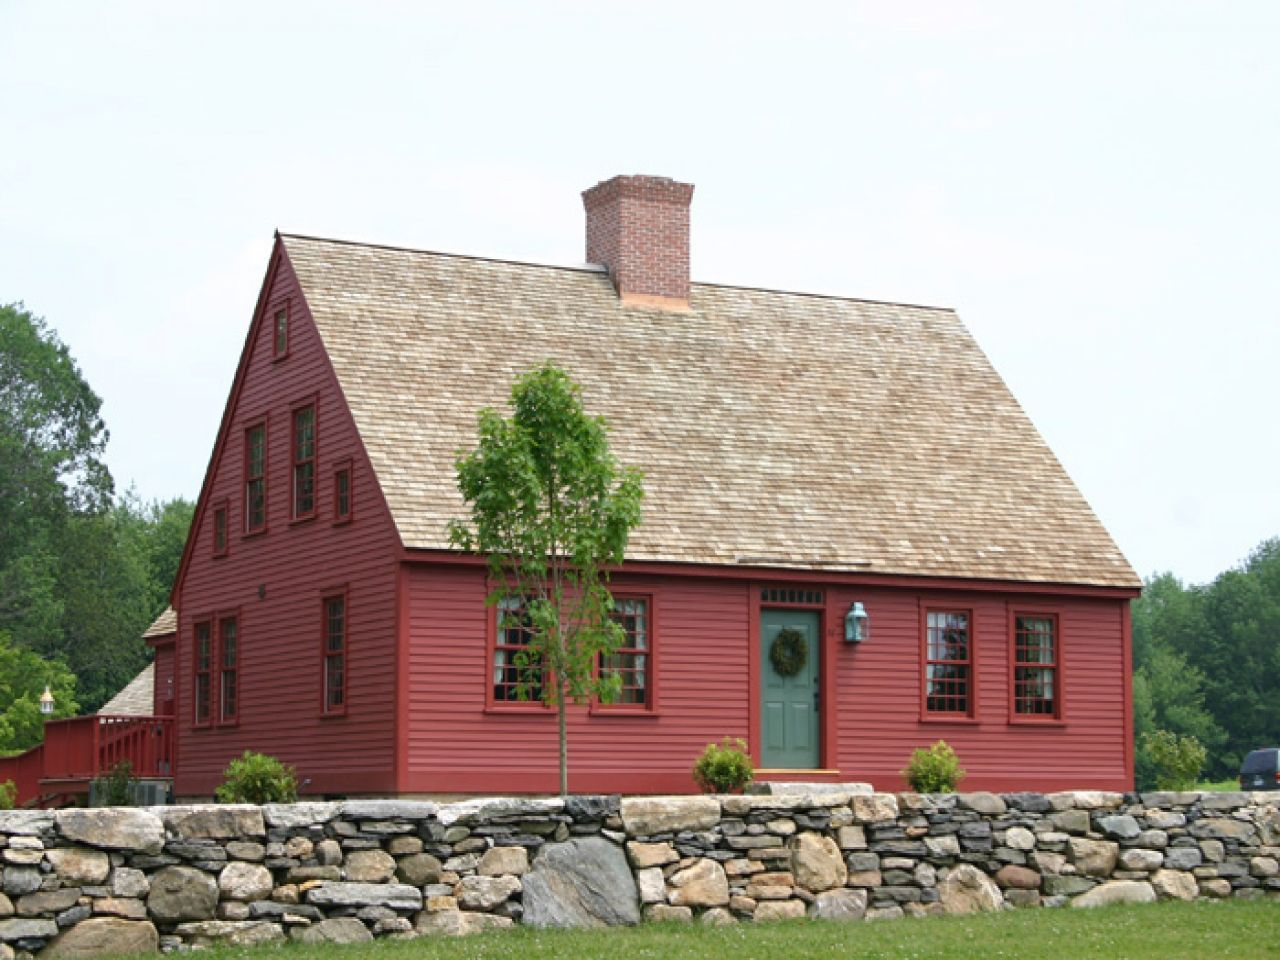 15+ Cape Cod House Style Ideas and Floor Plans ( Interior & Exterior ...